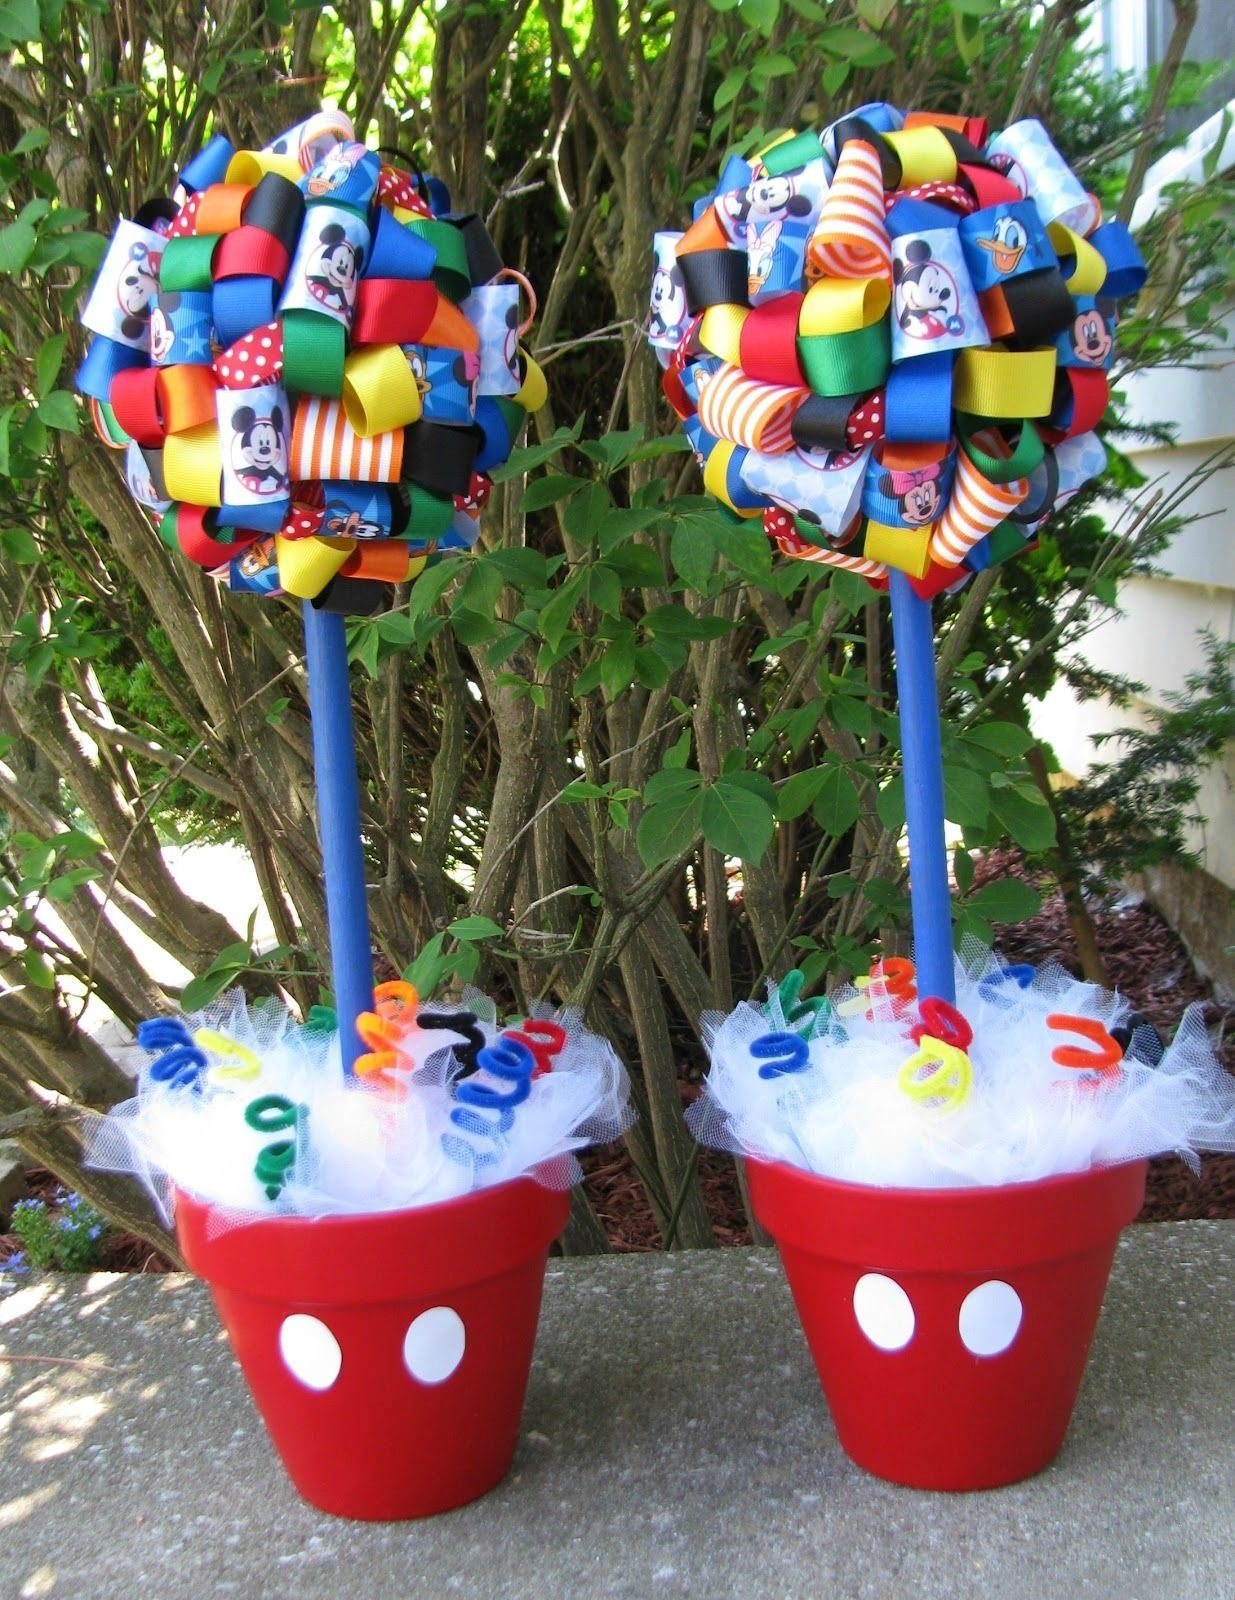 10 Attractive Party Ideas For A 1 Year Old img 8707 1235x1600 julian 1st birthday pinterest 1